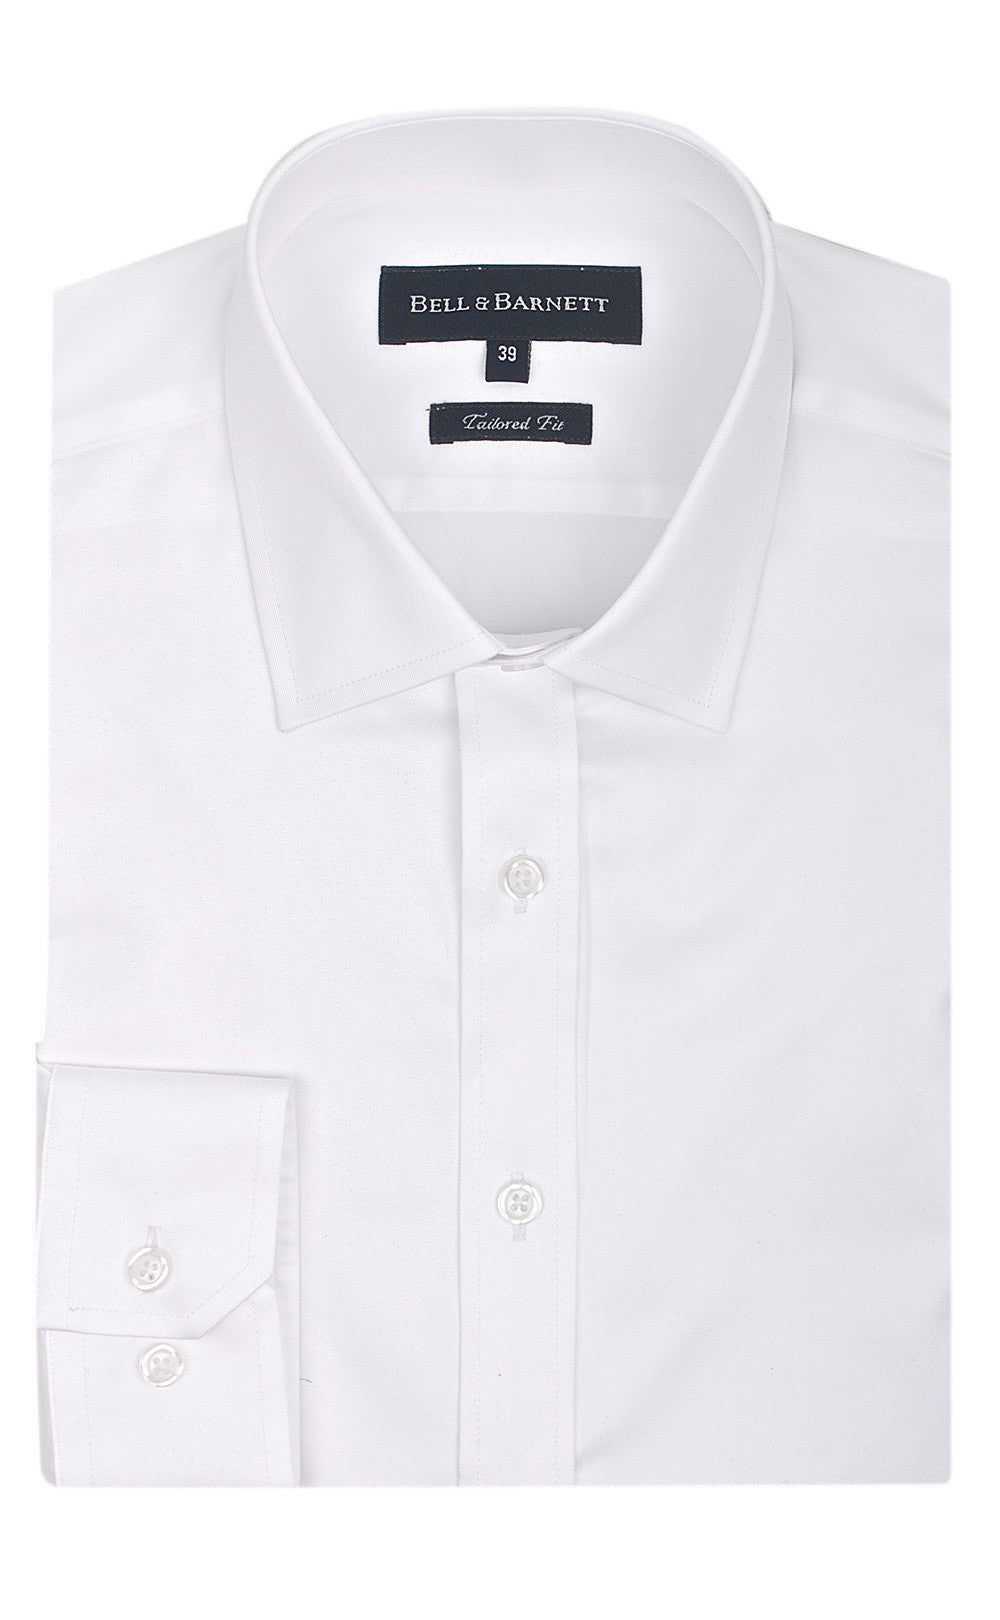 Bradley White Slim Fit Business Shirt - front.